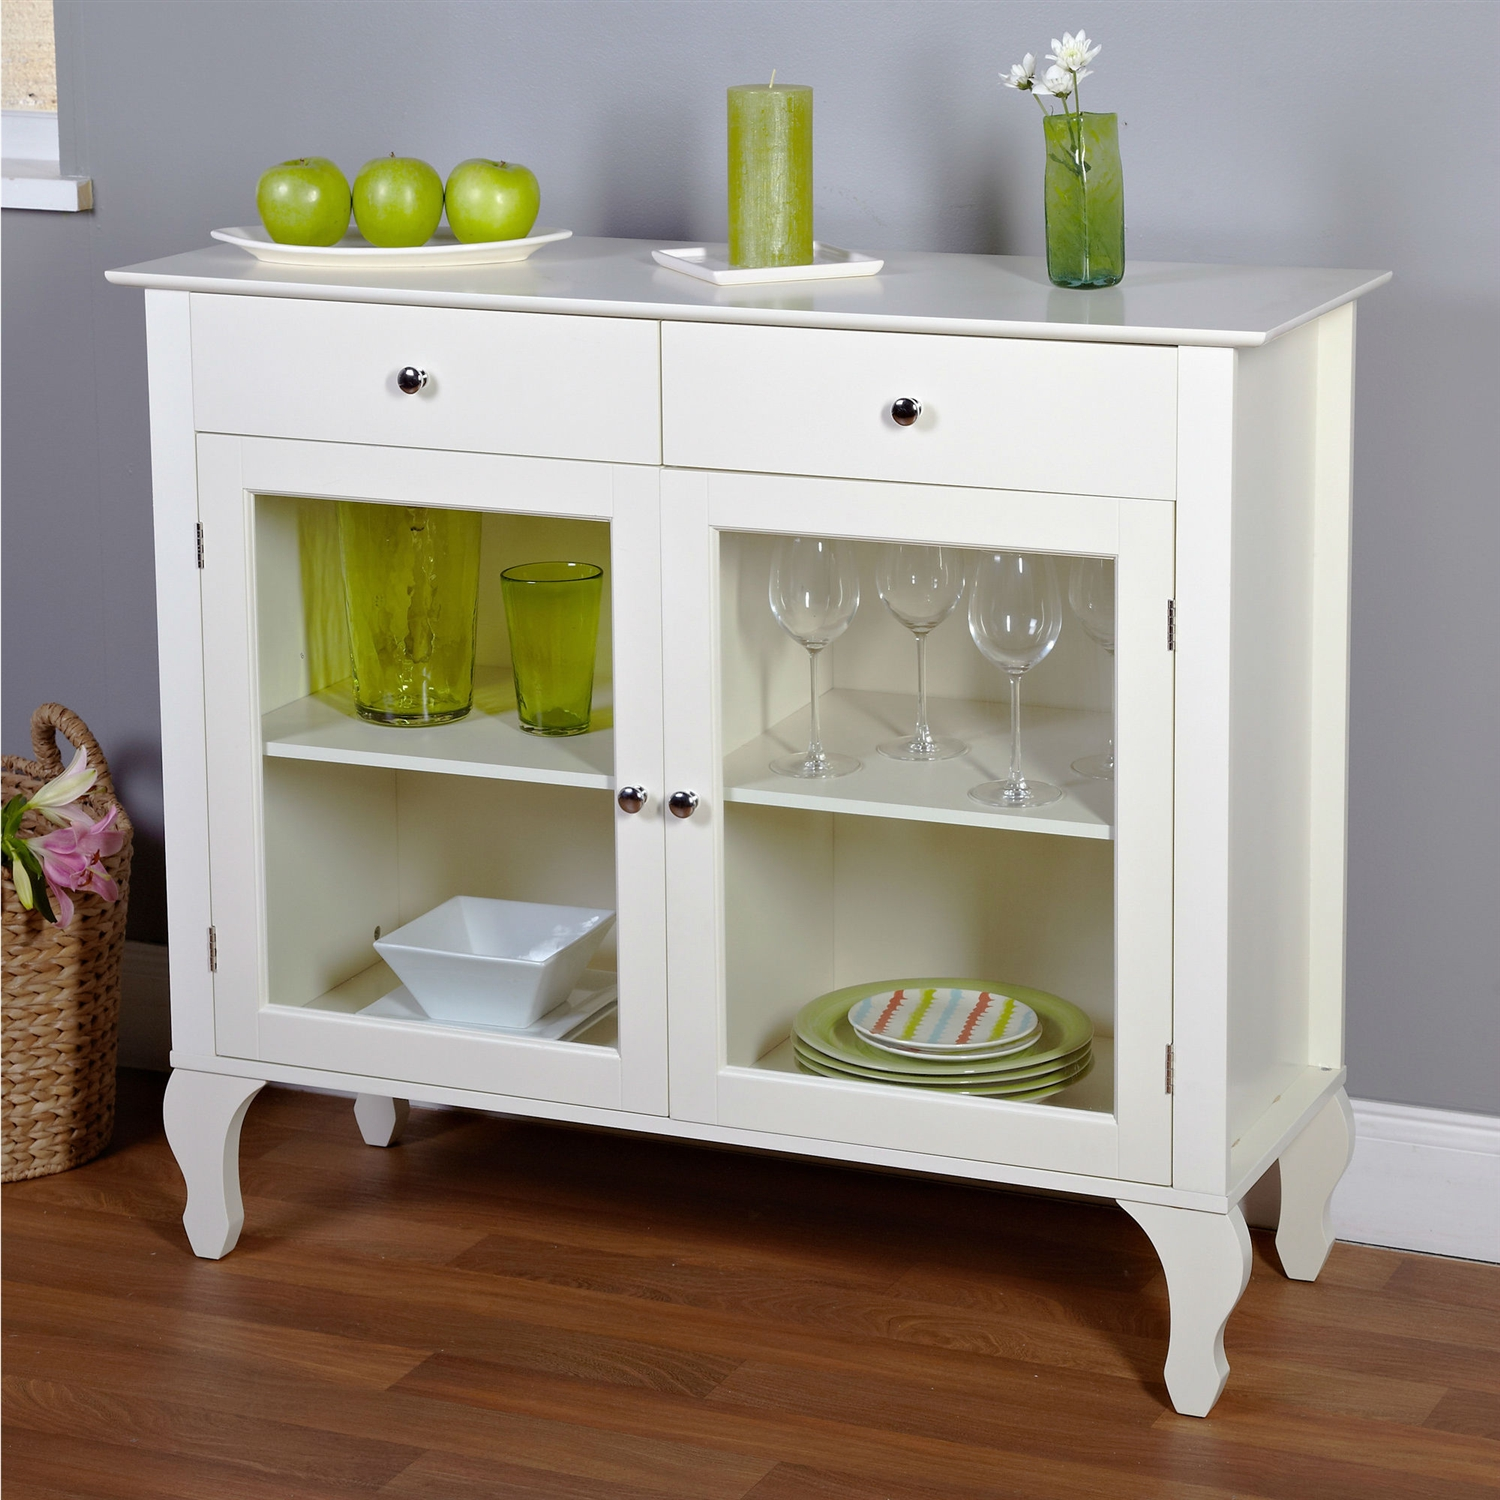 White Kitchen Buffet: Antique White Sideboard Buffet Console Table With Glass